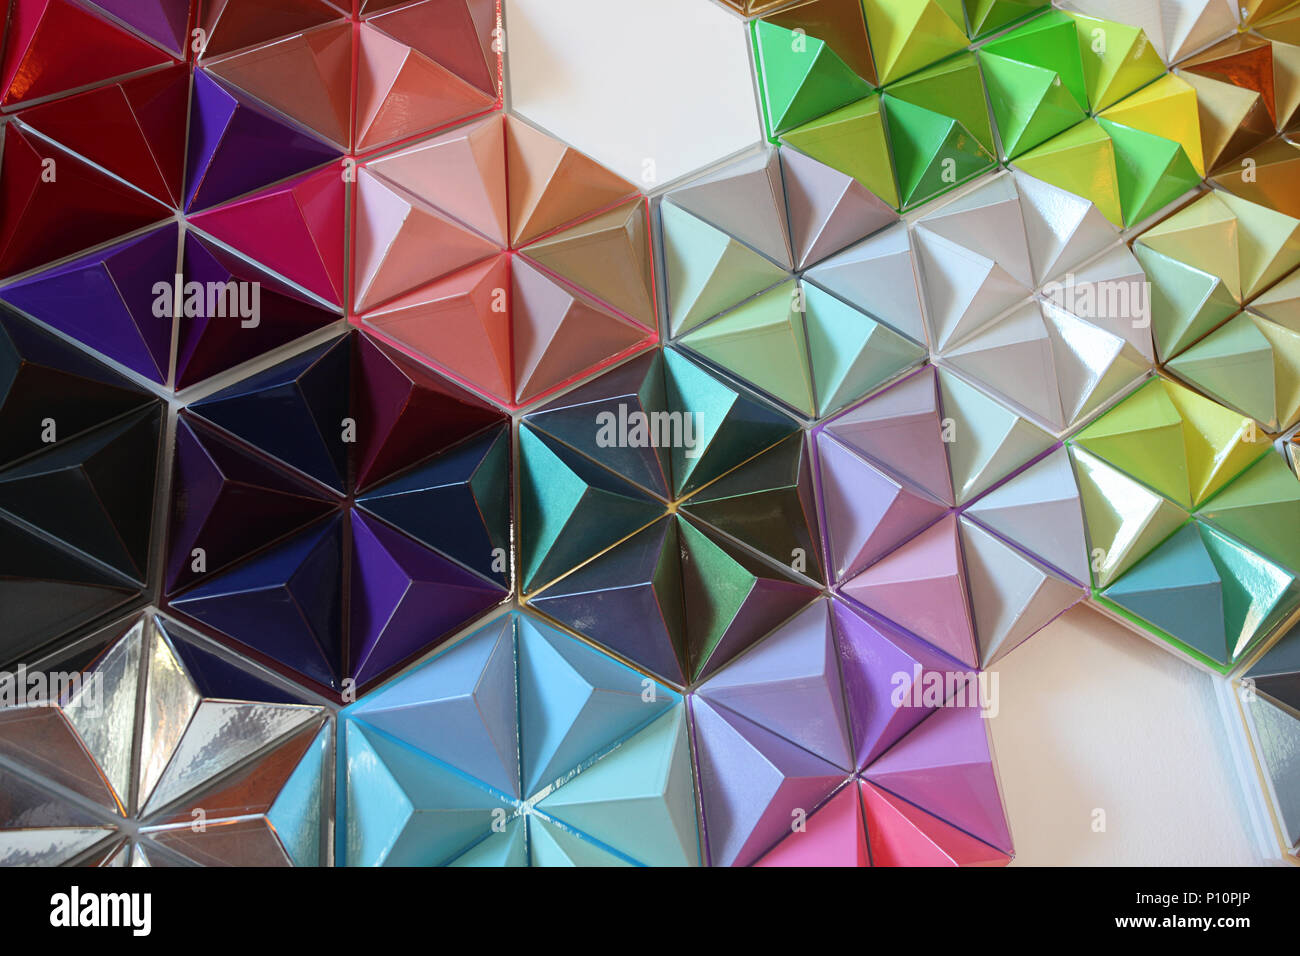 Contemporary 3D wall art of colourful polyhedrons - Stock Image